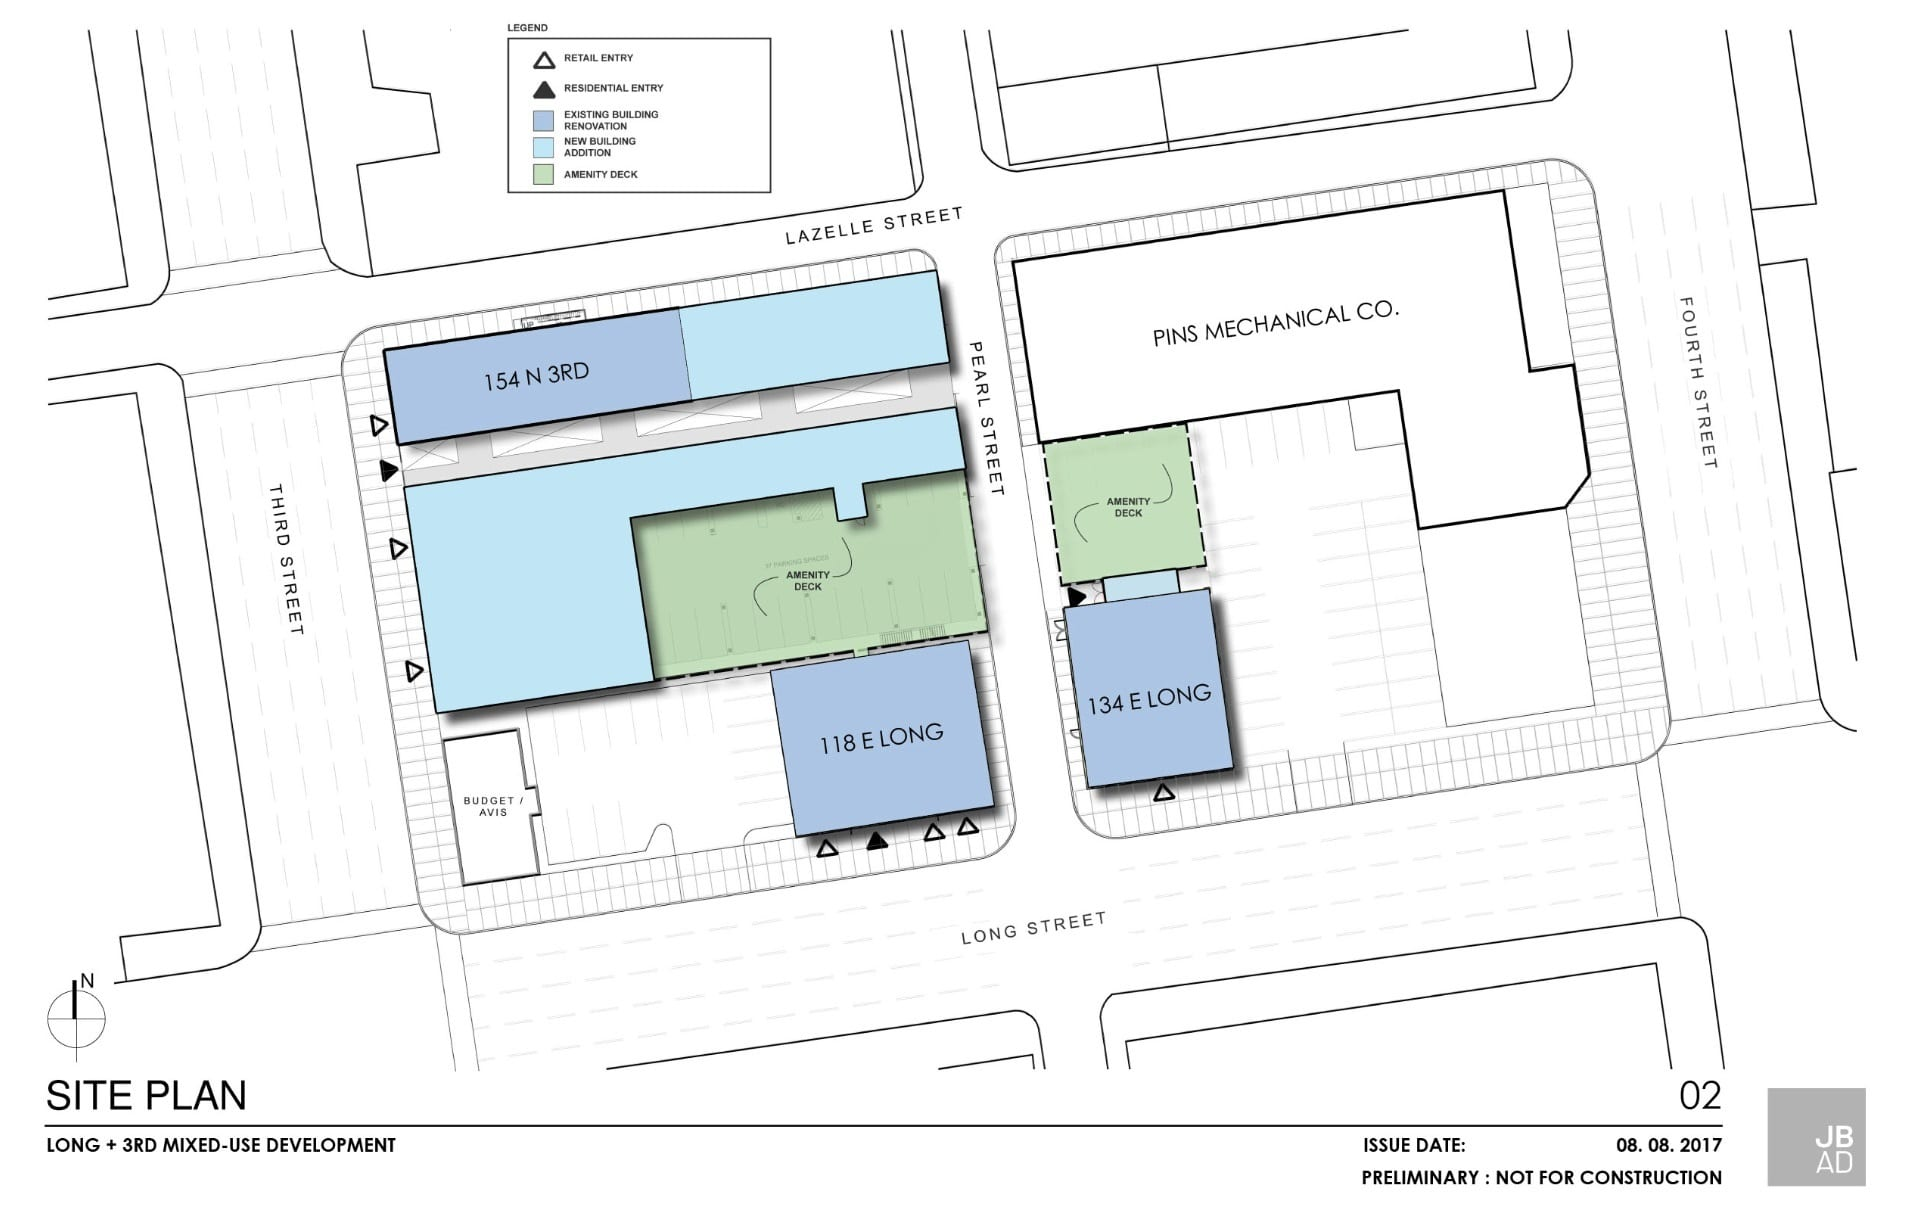 Scottenstein Property Group Developing Mixed Use Building